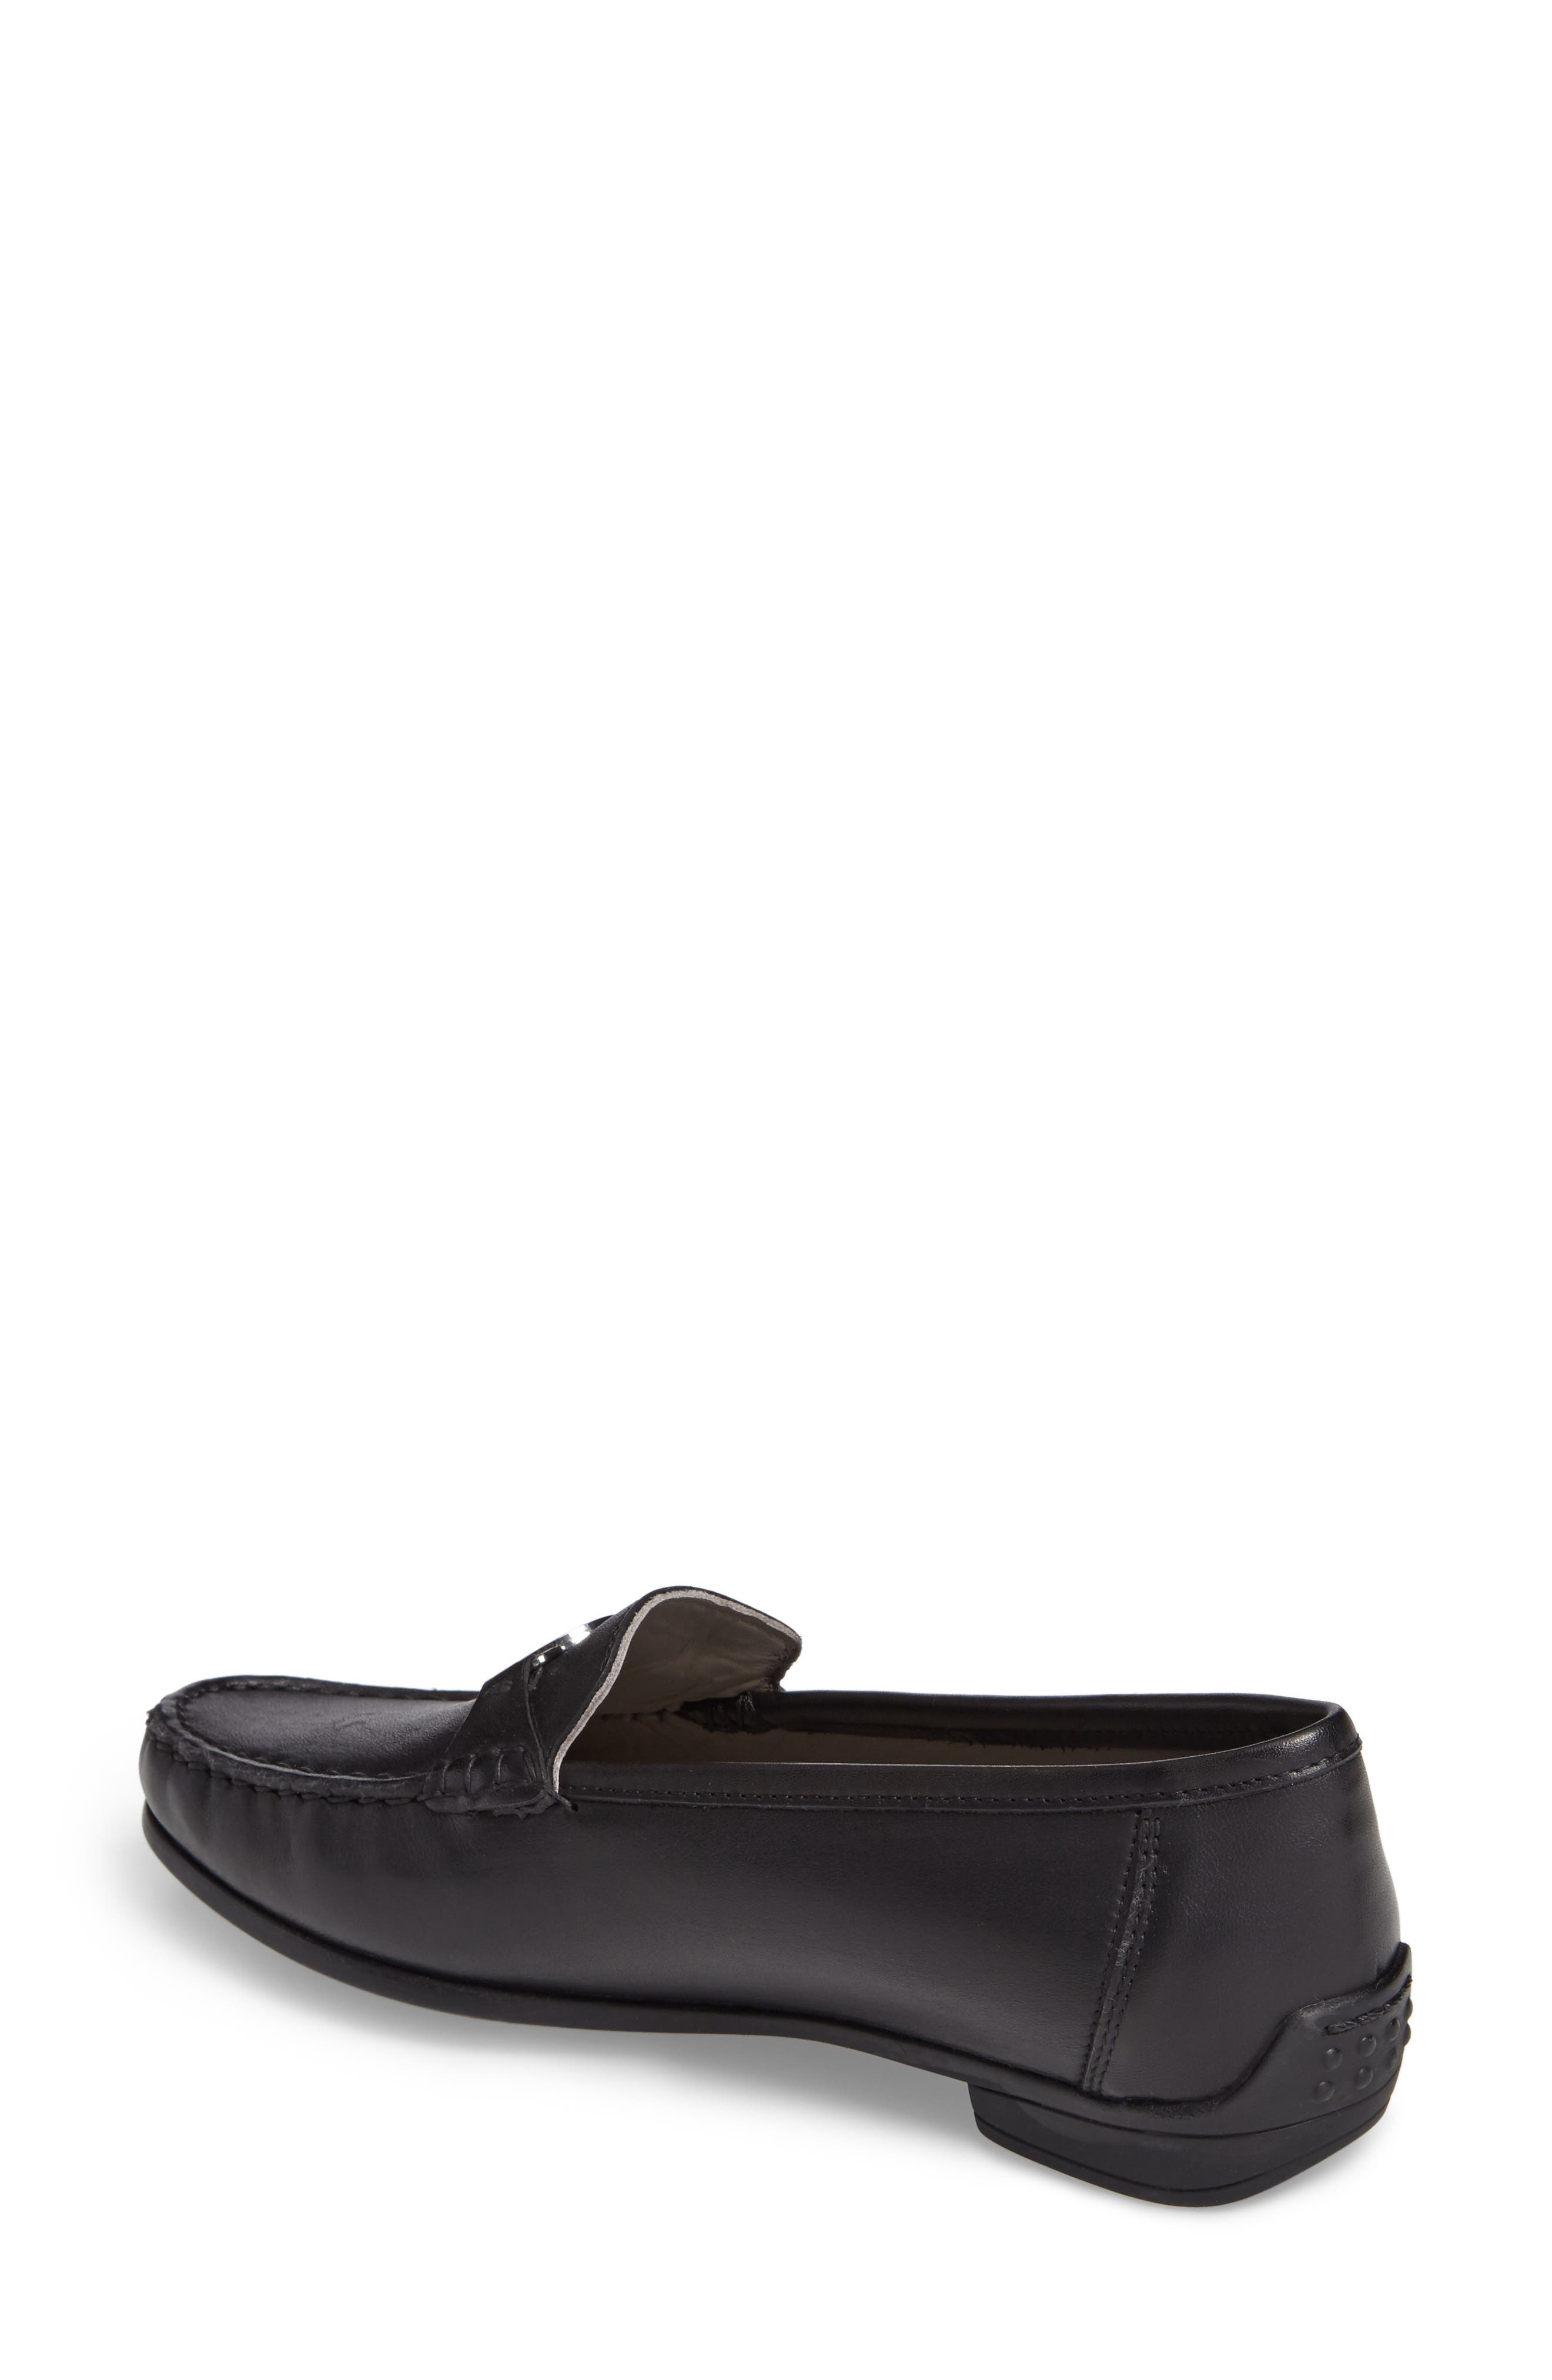 Blanche Loafer,                             Alternate thumbnail 2, color,                             Black Leather